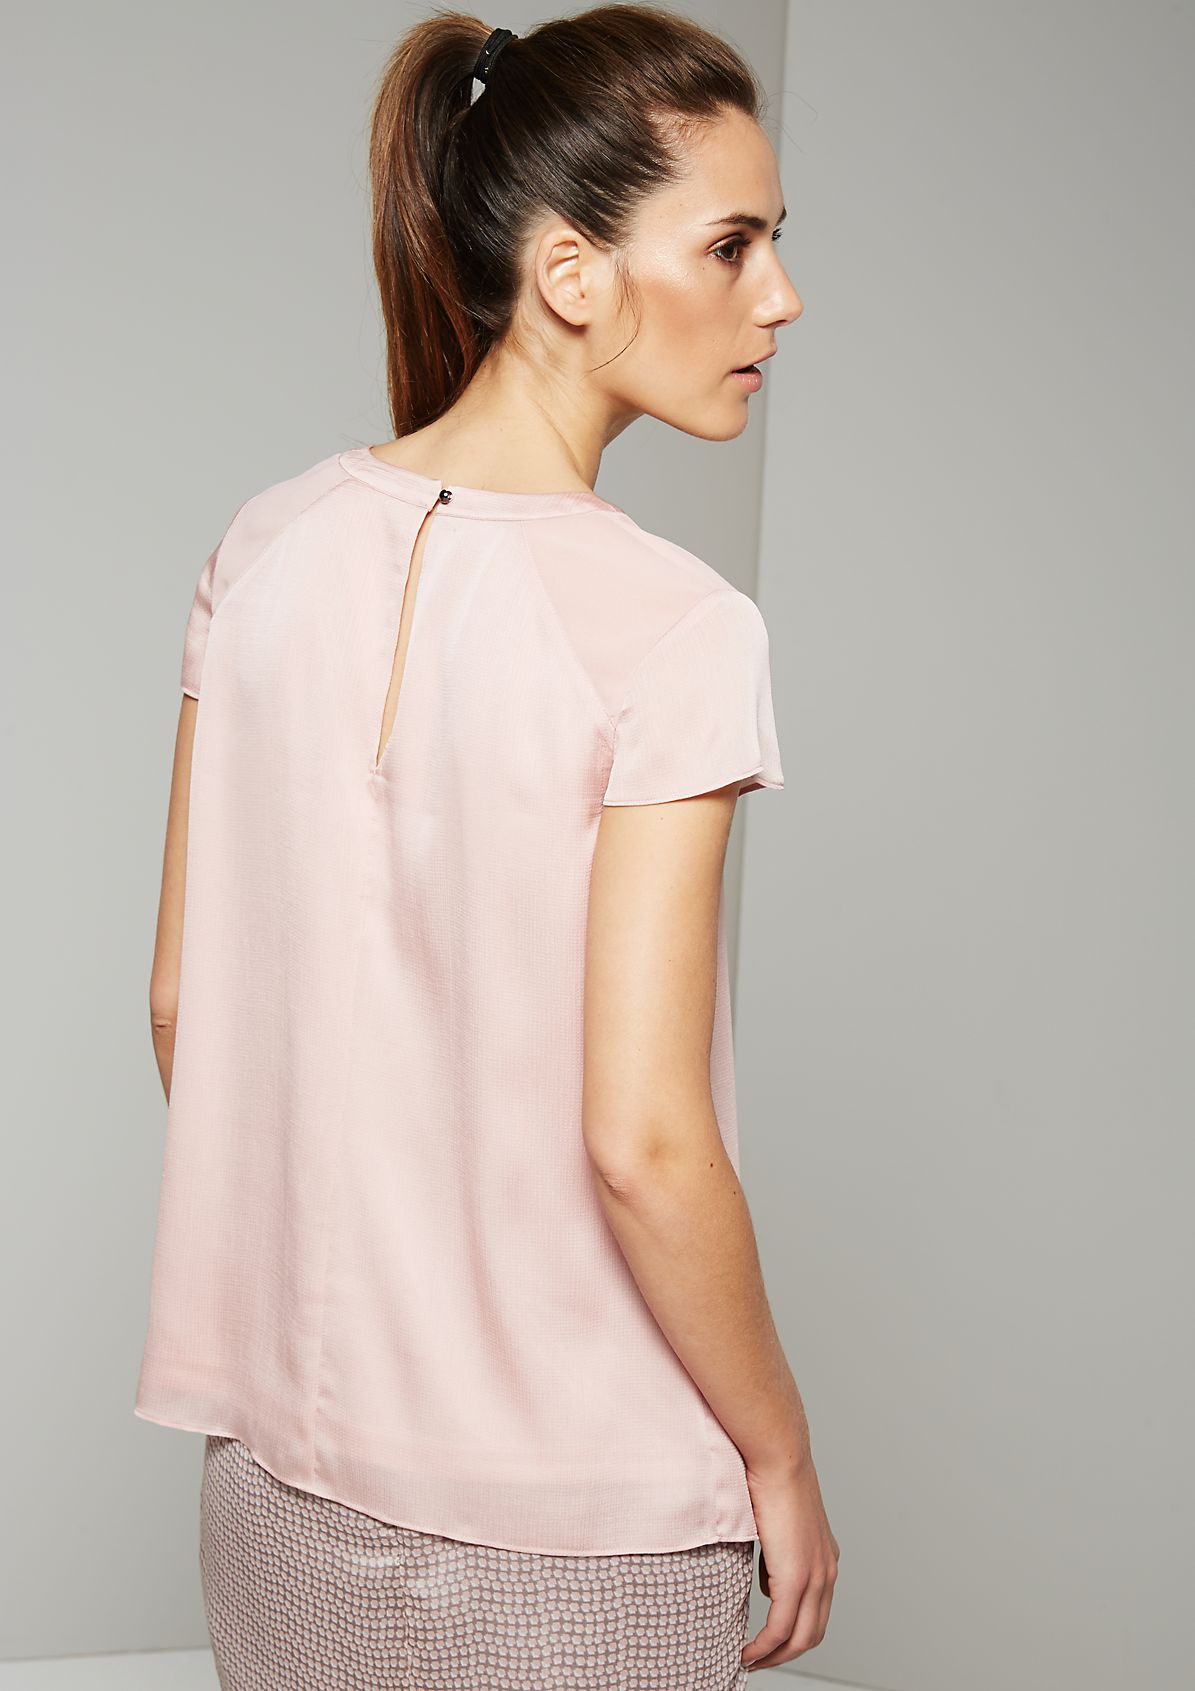 Charming summer top with great puckers from s.Oliver